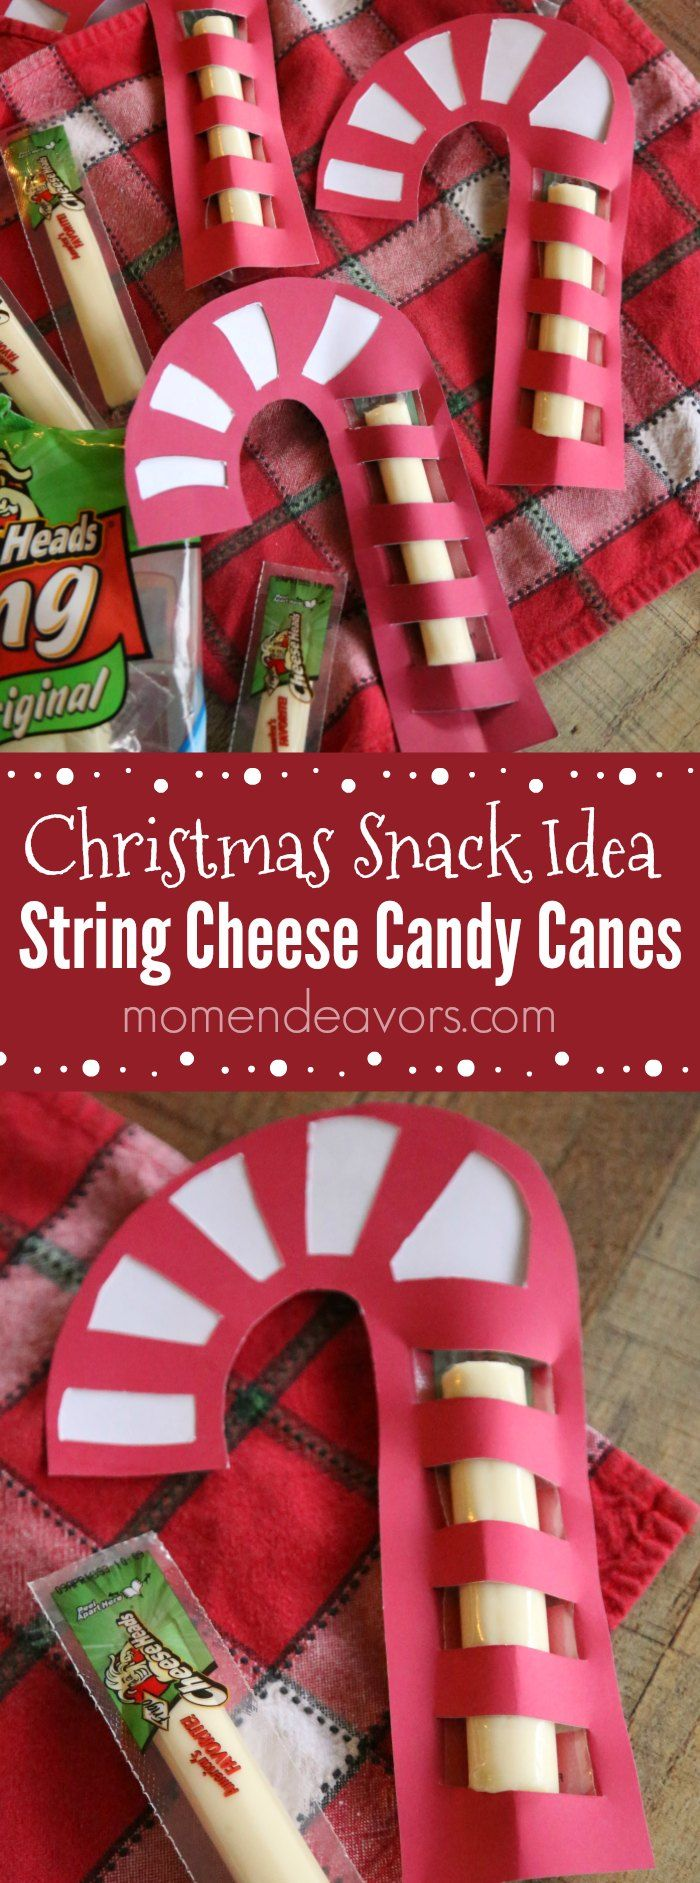 String Cheese Candy Canes - a healthier, cute Christmas snack that is full of protein instead of sugar! Free template download! AD